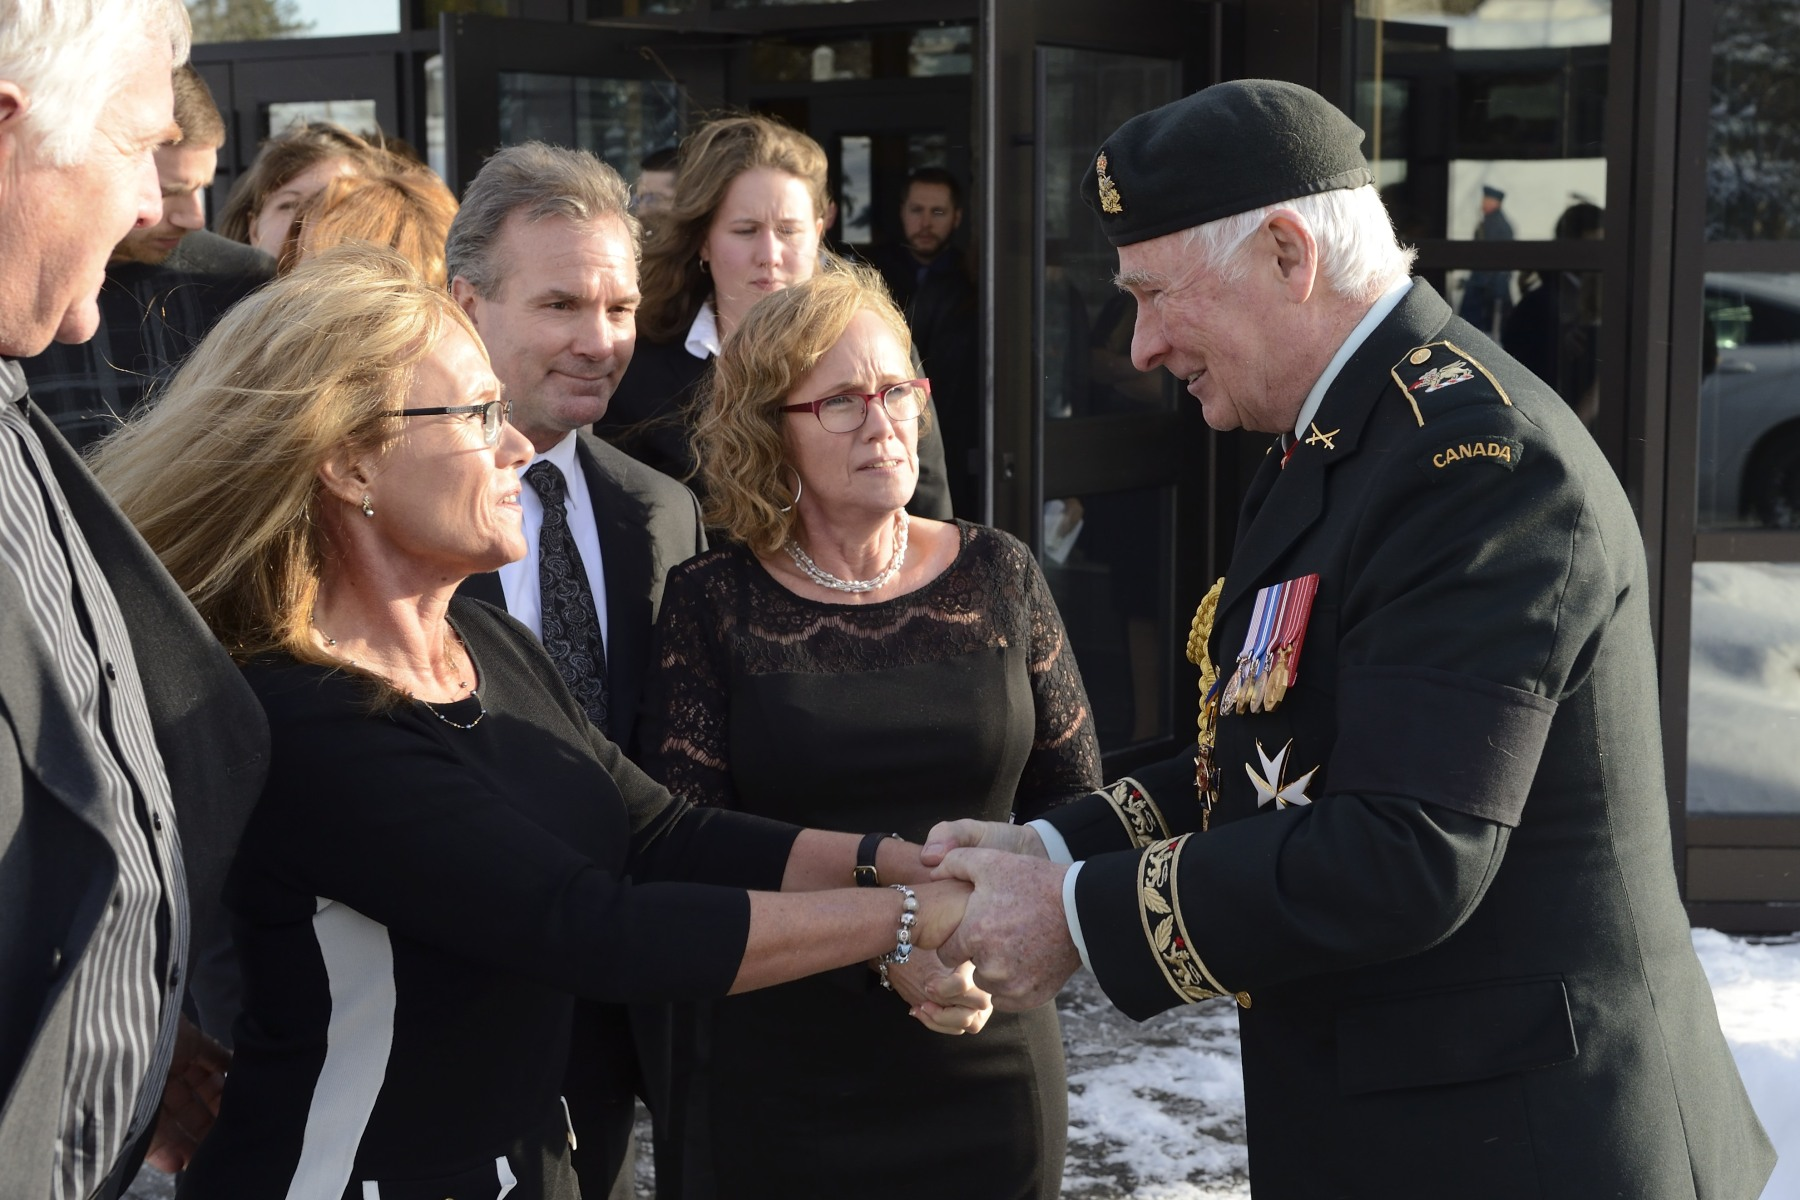 On behalf of all Canadians, the Governor General offered his condolences to the family of General Withers.